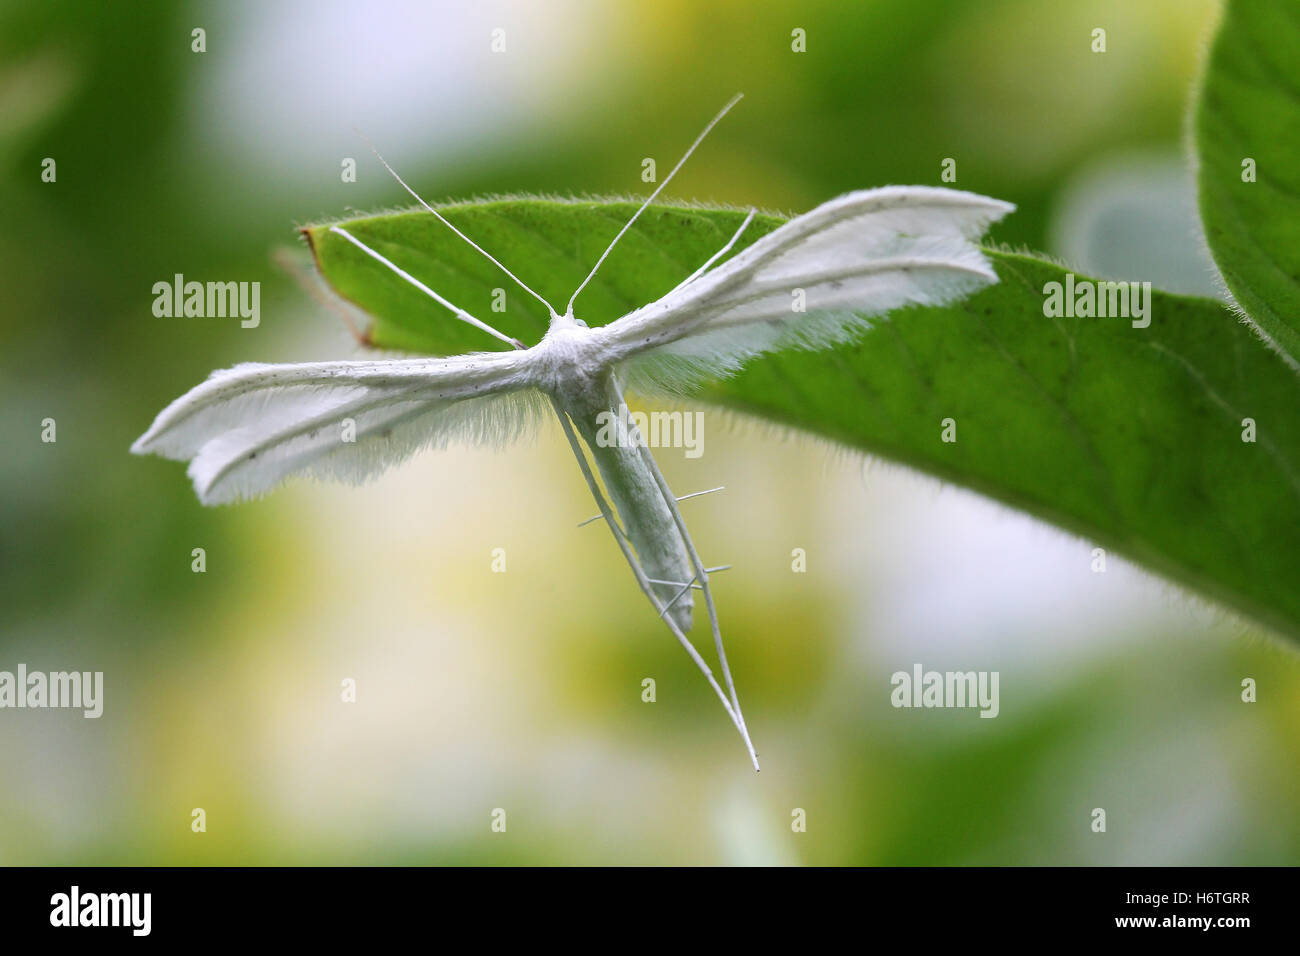 the many-plumed moth or pterophoridae - Stock Image